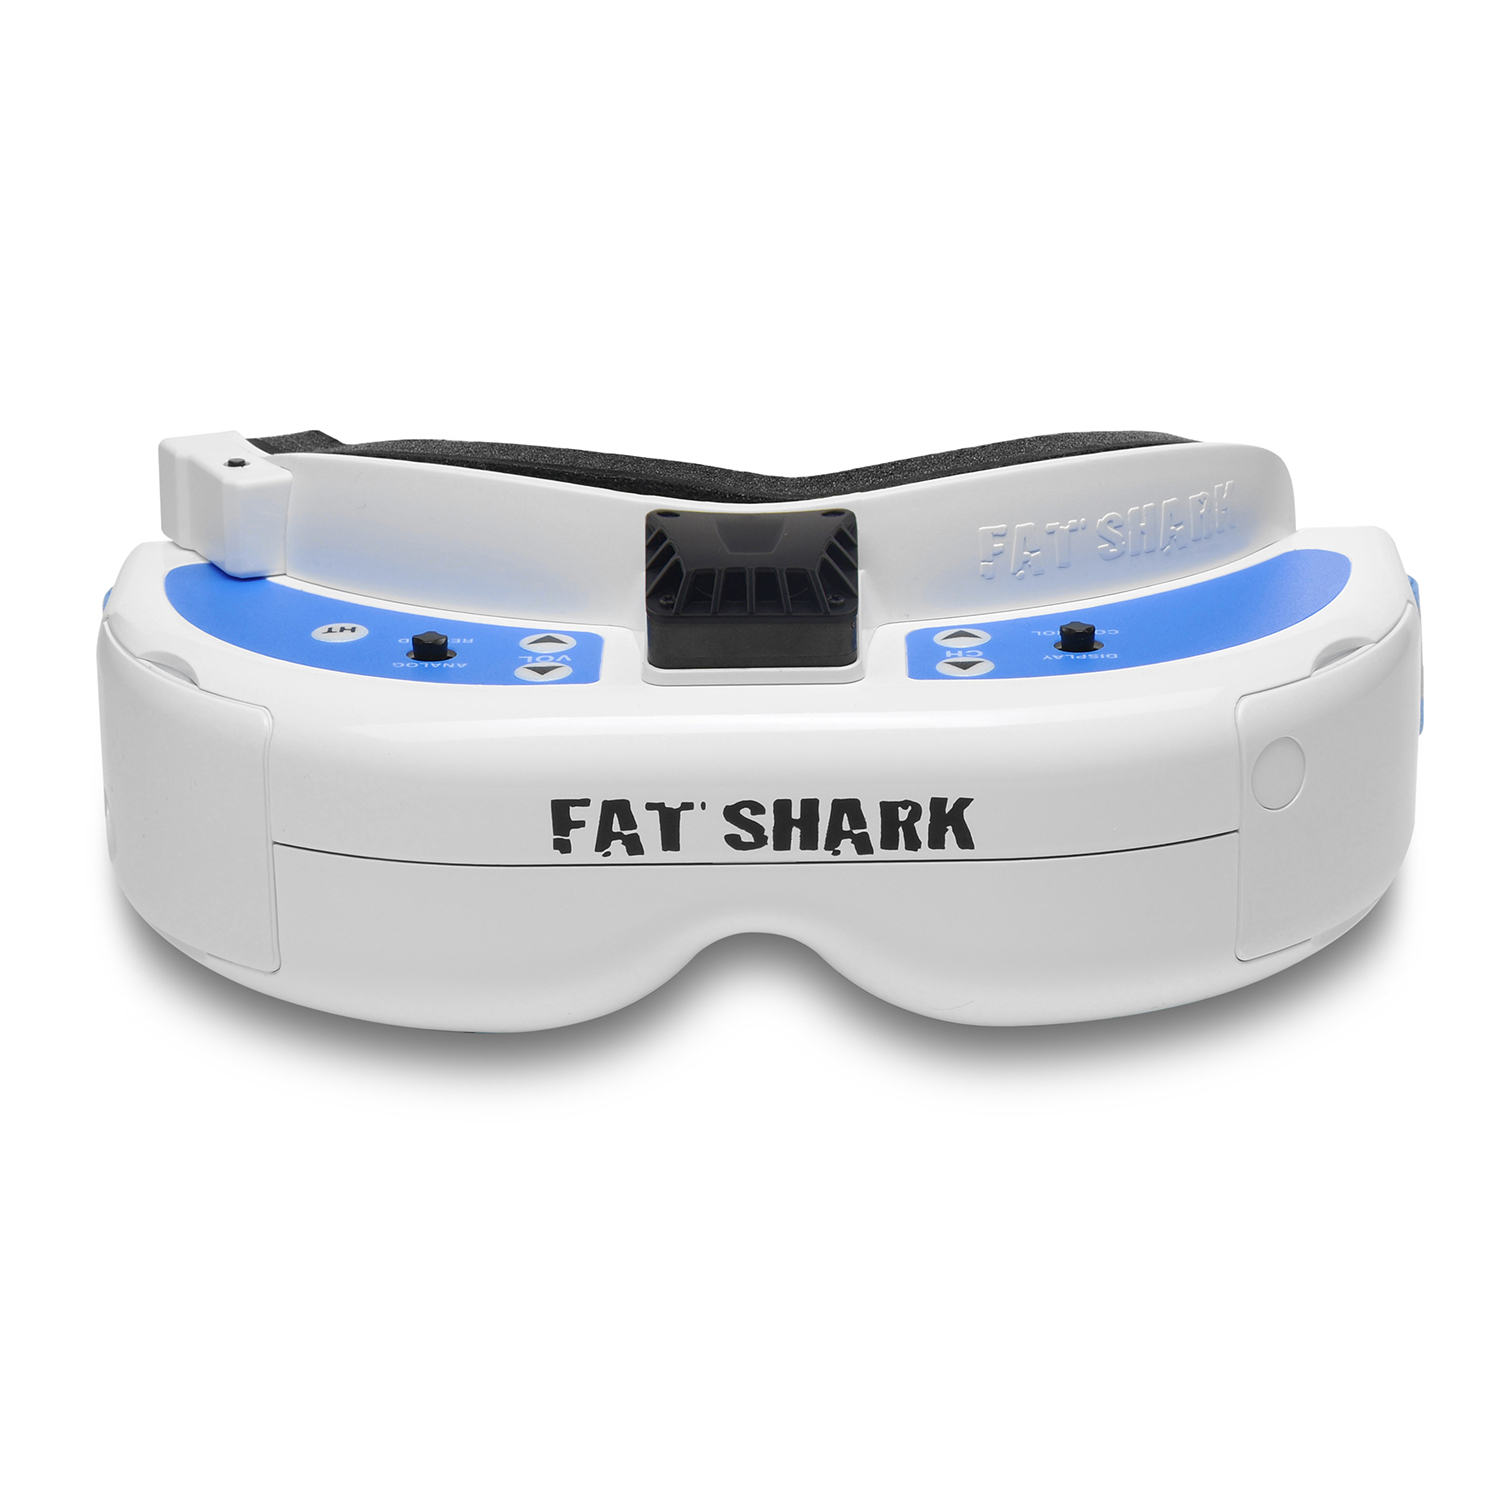 цена на Fatshark Dominator DOM V3 FPV Video Goggles Video Glasses WVGA 720p HDMI 800X480 DVR